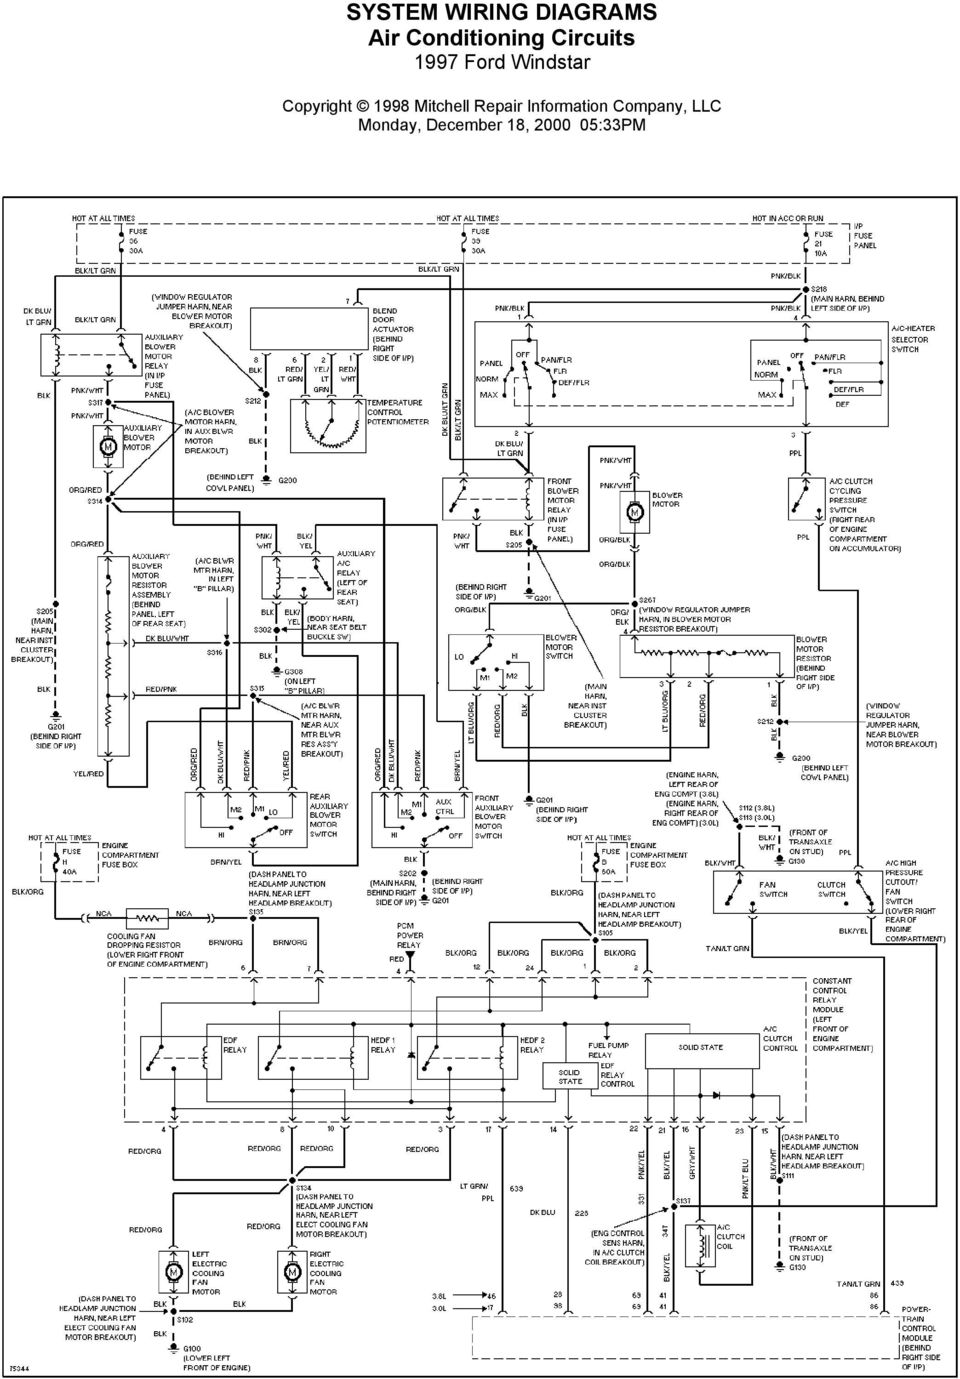 System Wiring Diagrams Air Conditioning Circuits 1997 Ford Windstar 97 Expedition Power Window Diagram